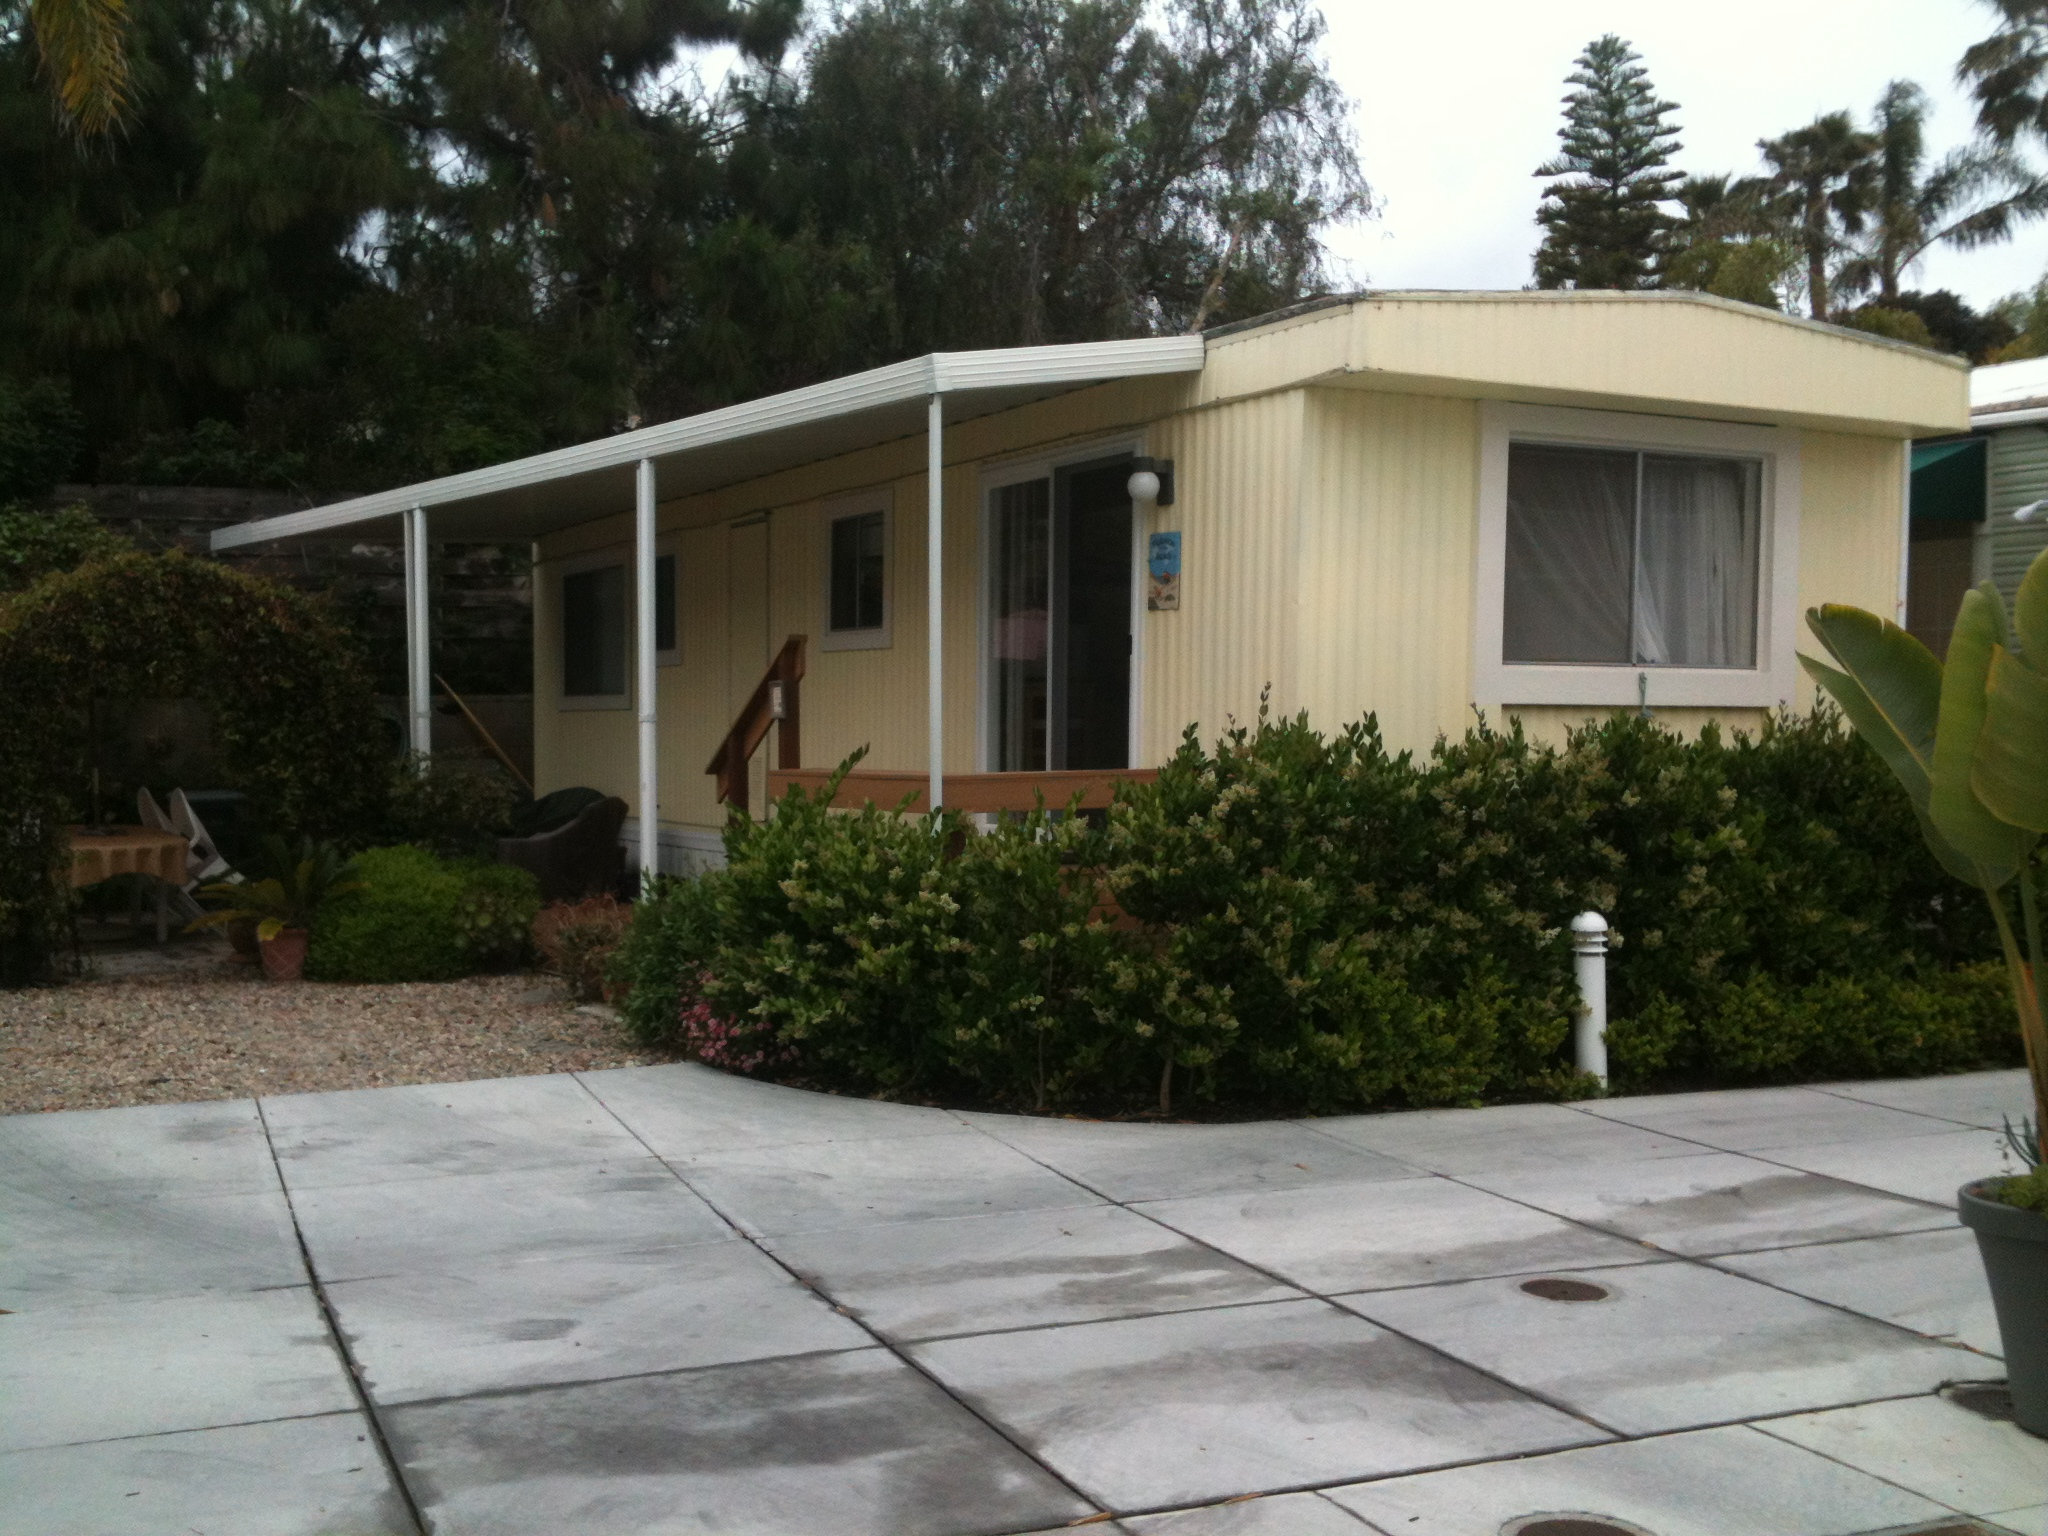 Park Model Mobile Home Definition